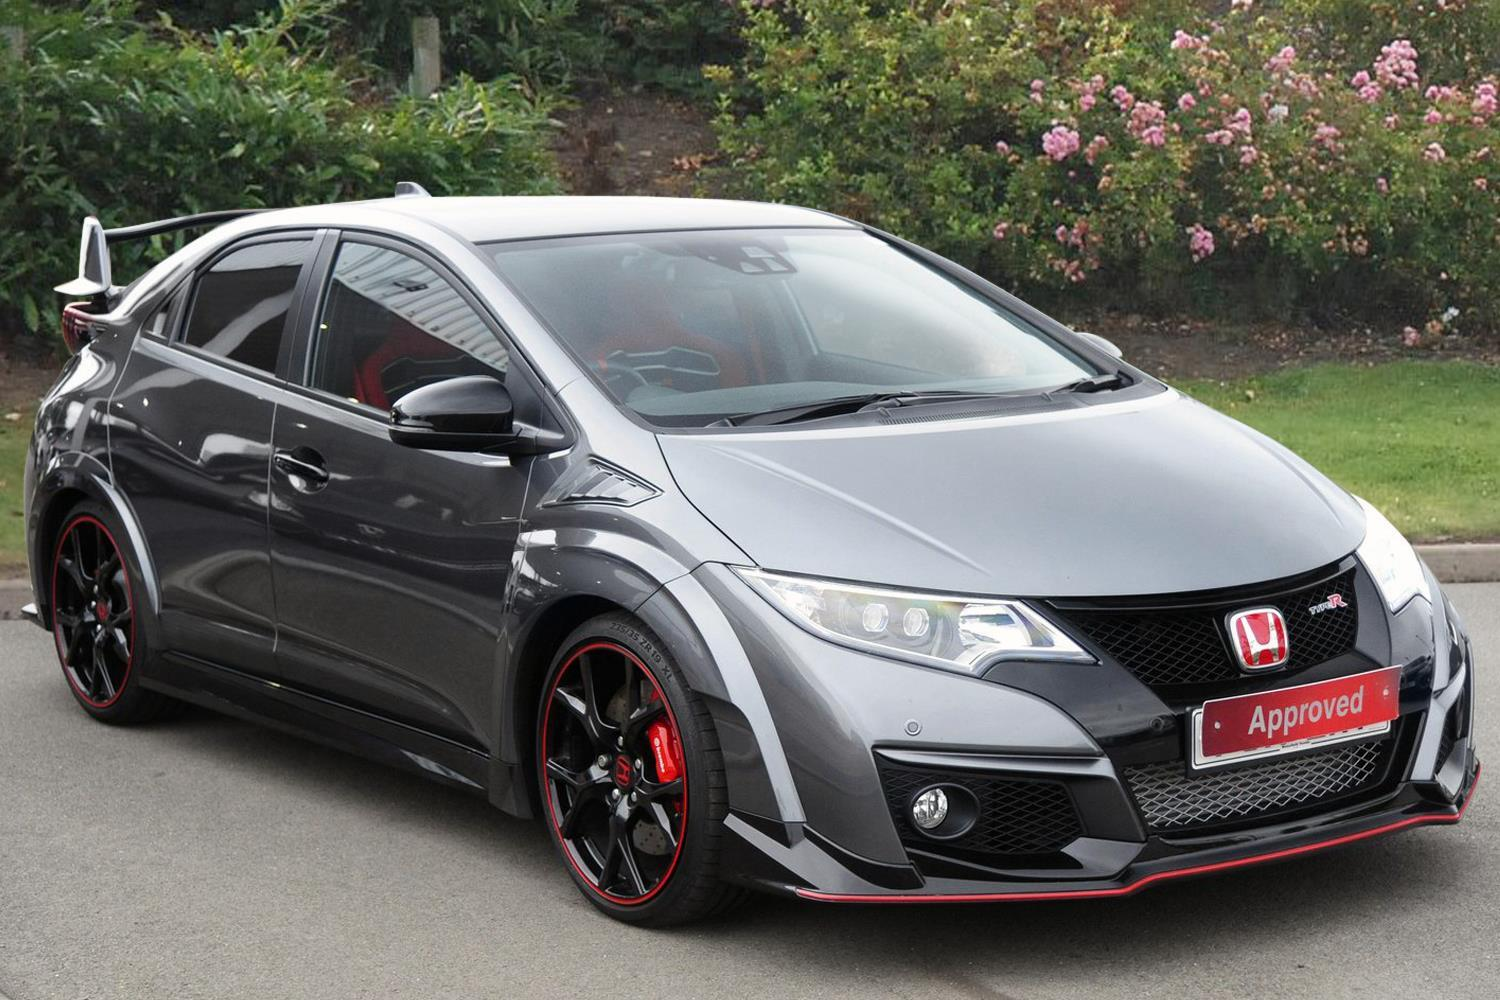 used honda civic type r 2 0 i vtec type r gt 5dr petrol hatchback for sale vertu honda. Black Bedroom Furniture Sets. Home Design Ideas